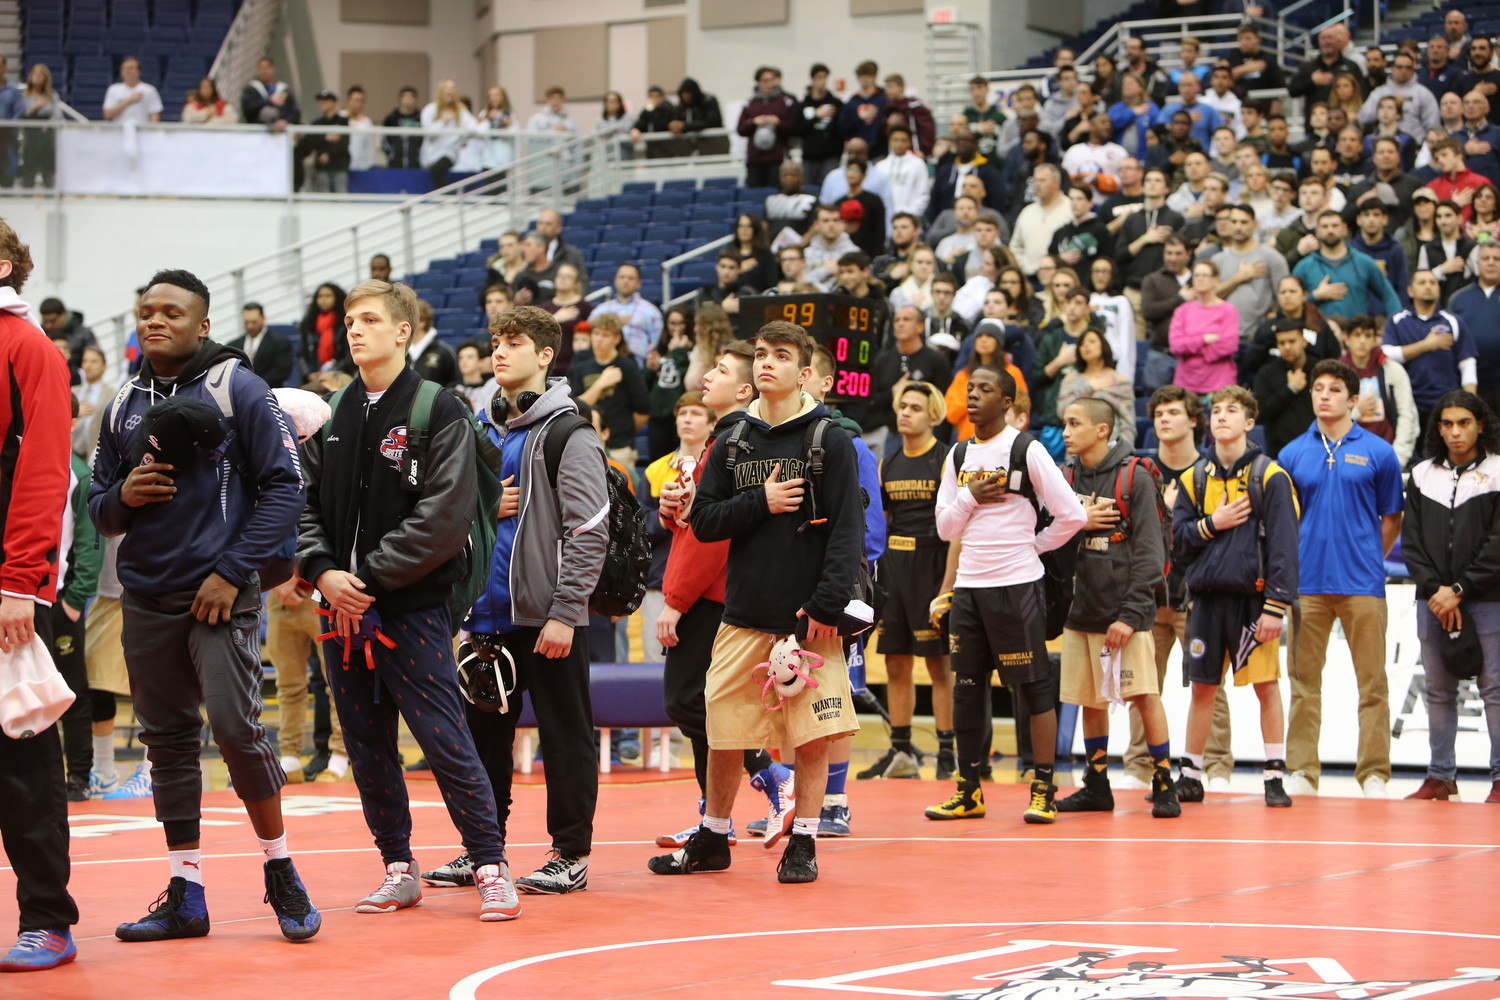 Vines, center, stood at attention for the flag with his fellow competitors. He, along with four of his teammates, would come back to the mat later in the night to win an individual county title.